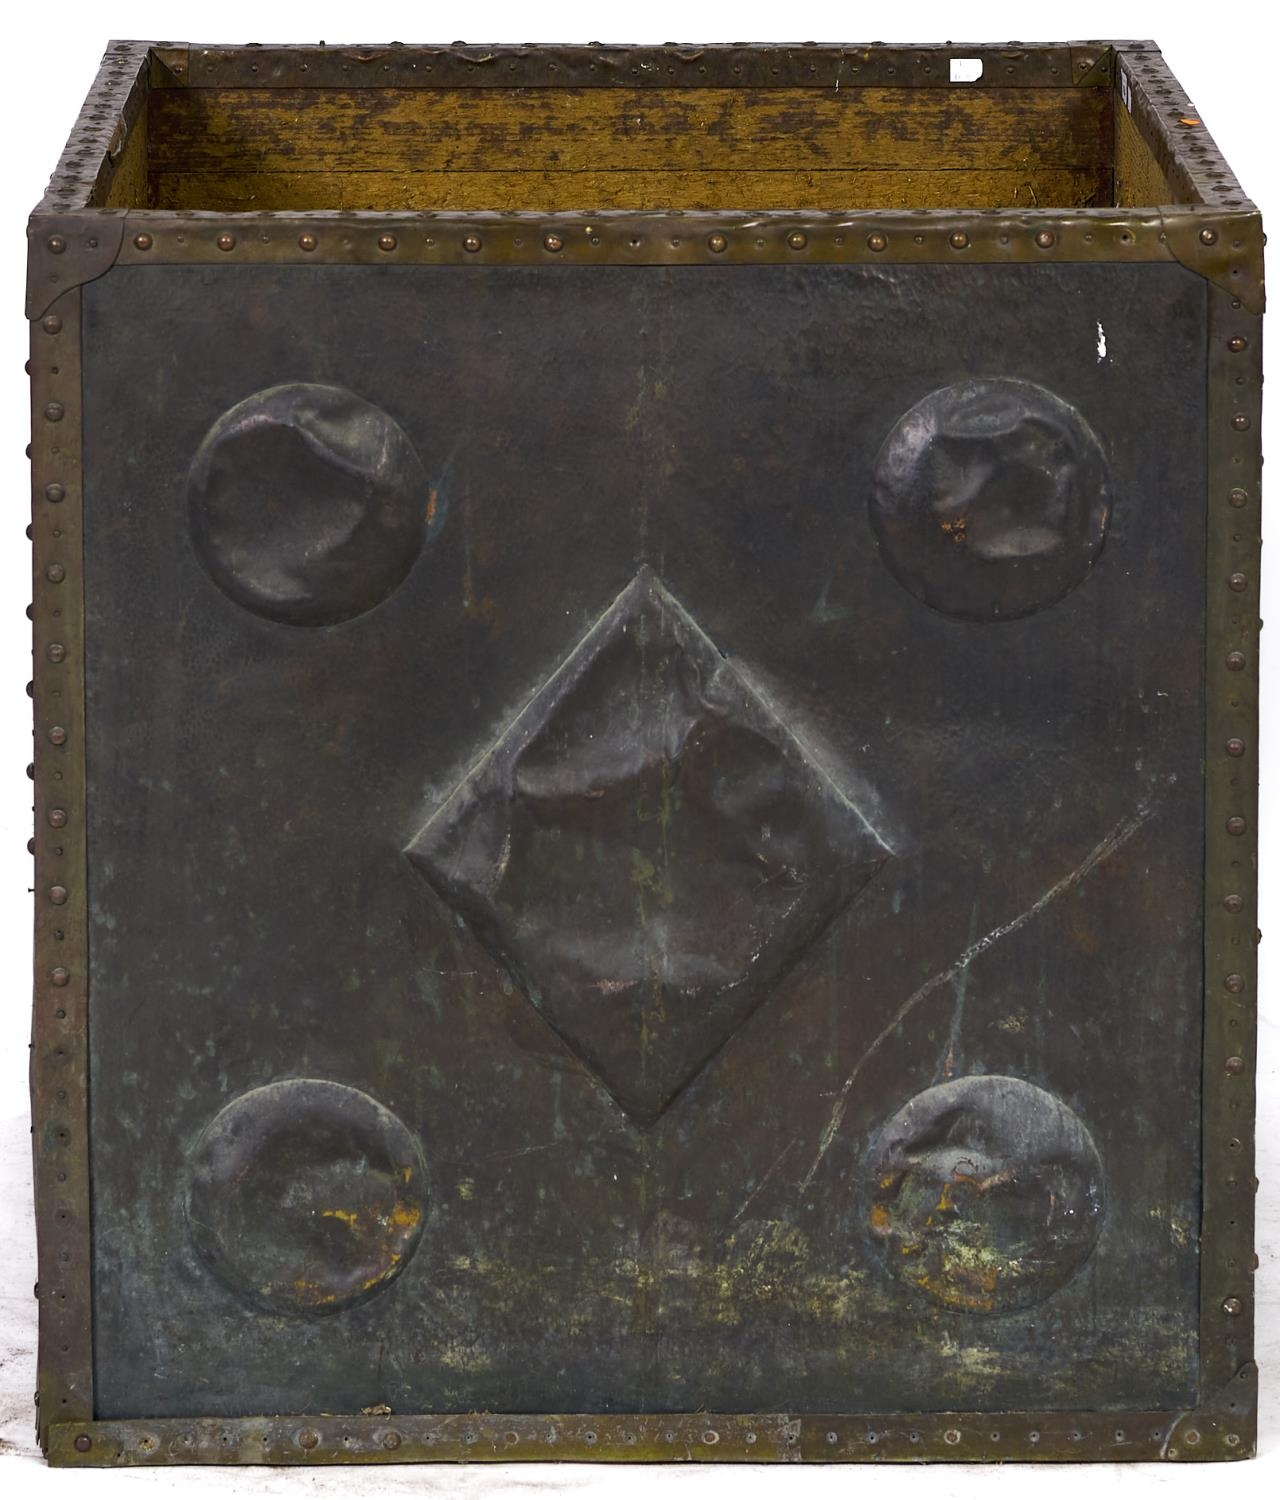 A brass and copper cased pine log bin, early 20th c, square planked form, two panels of copper,